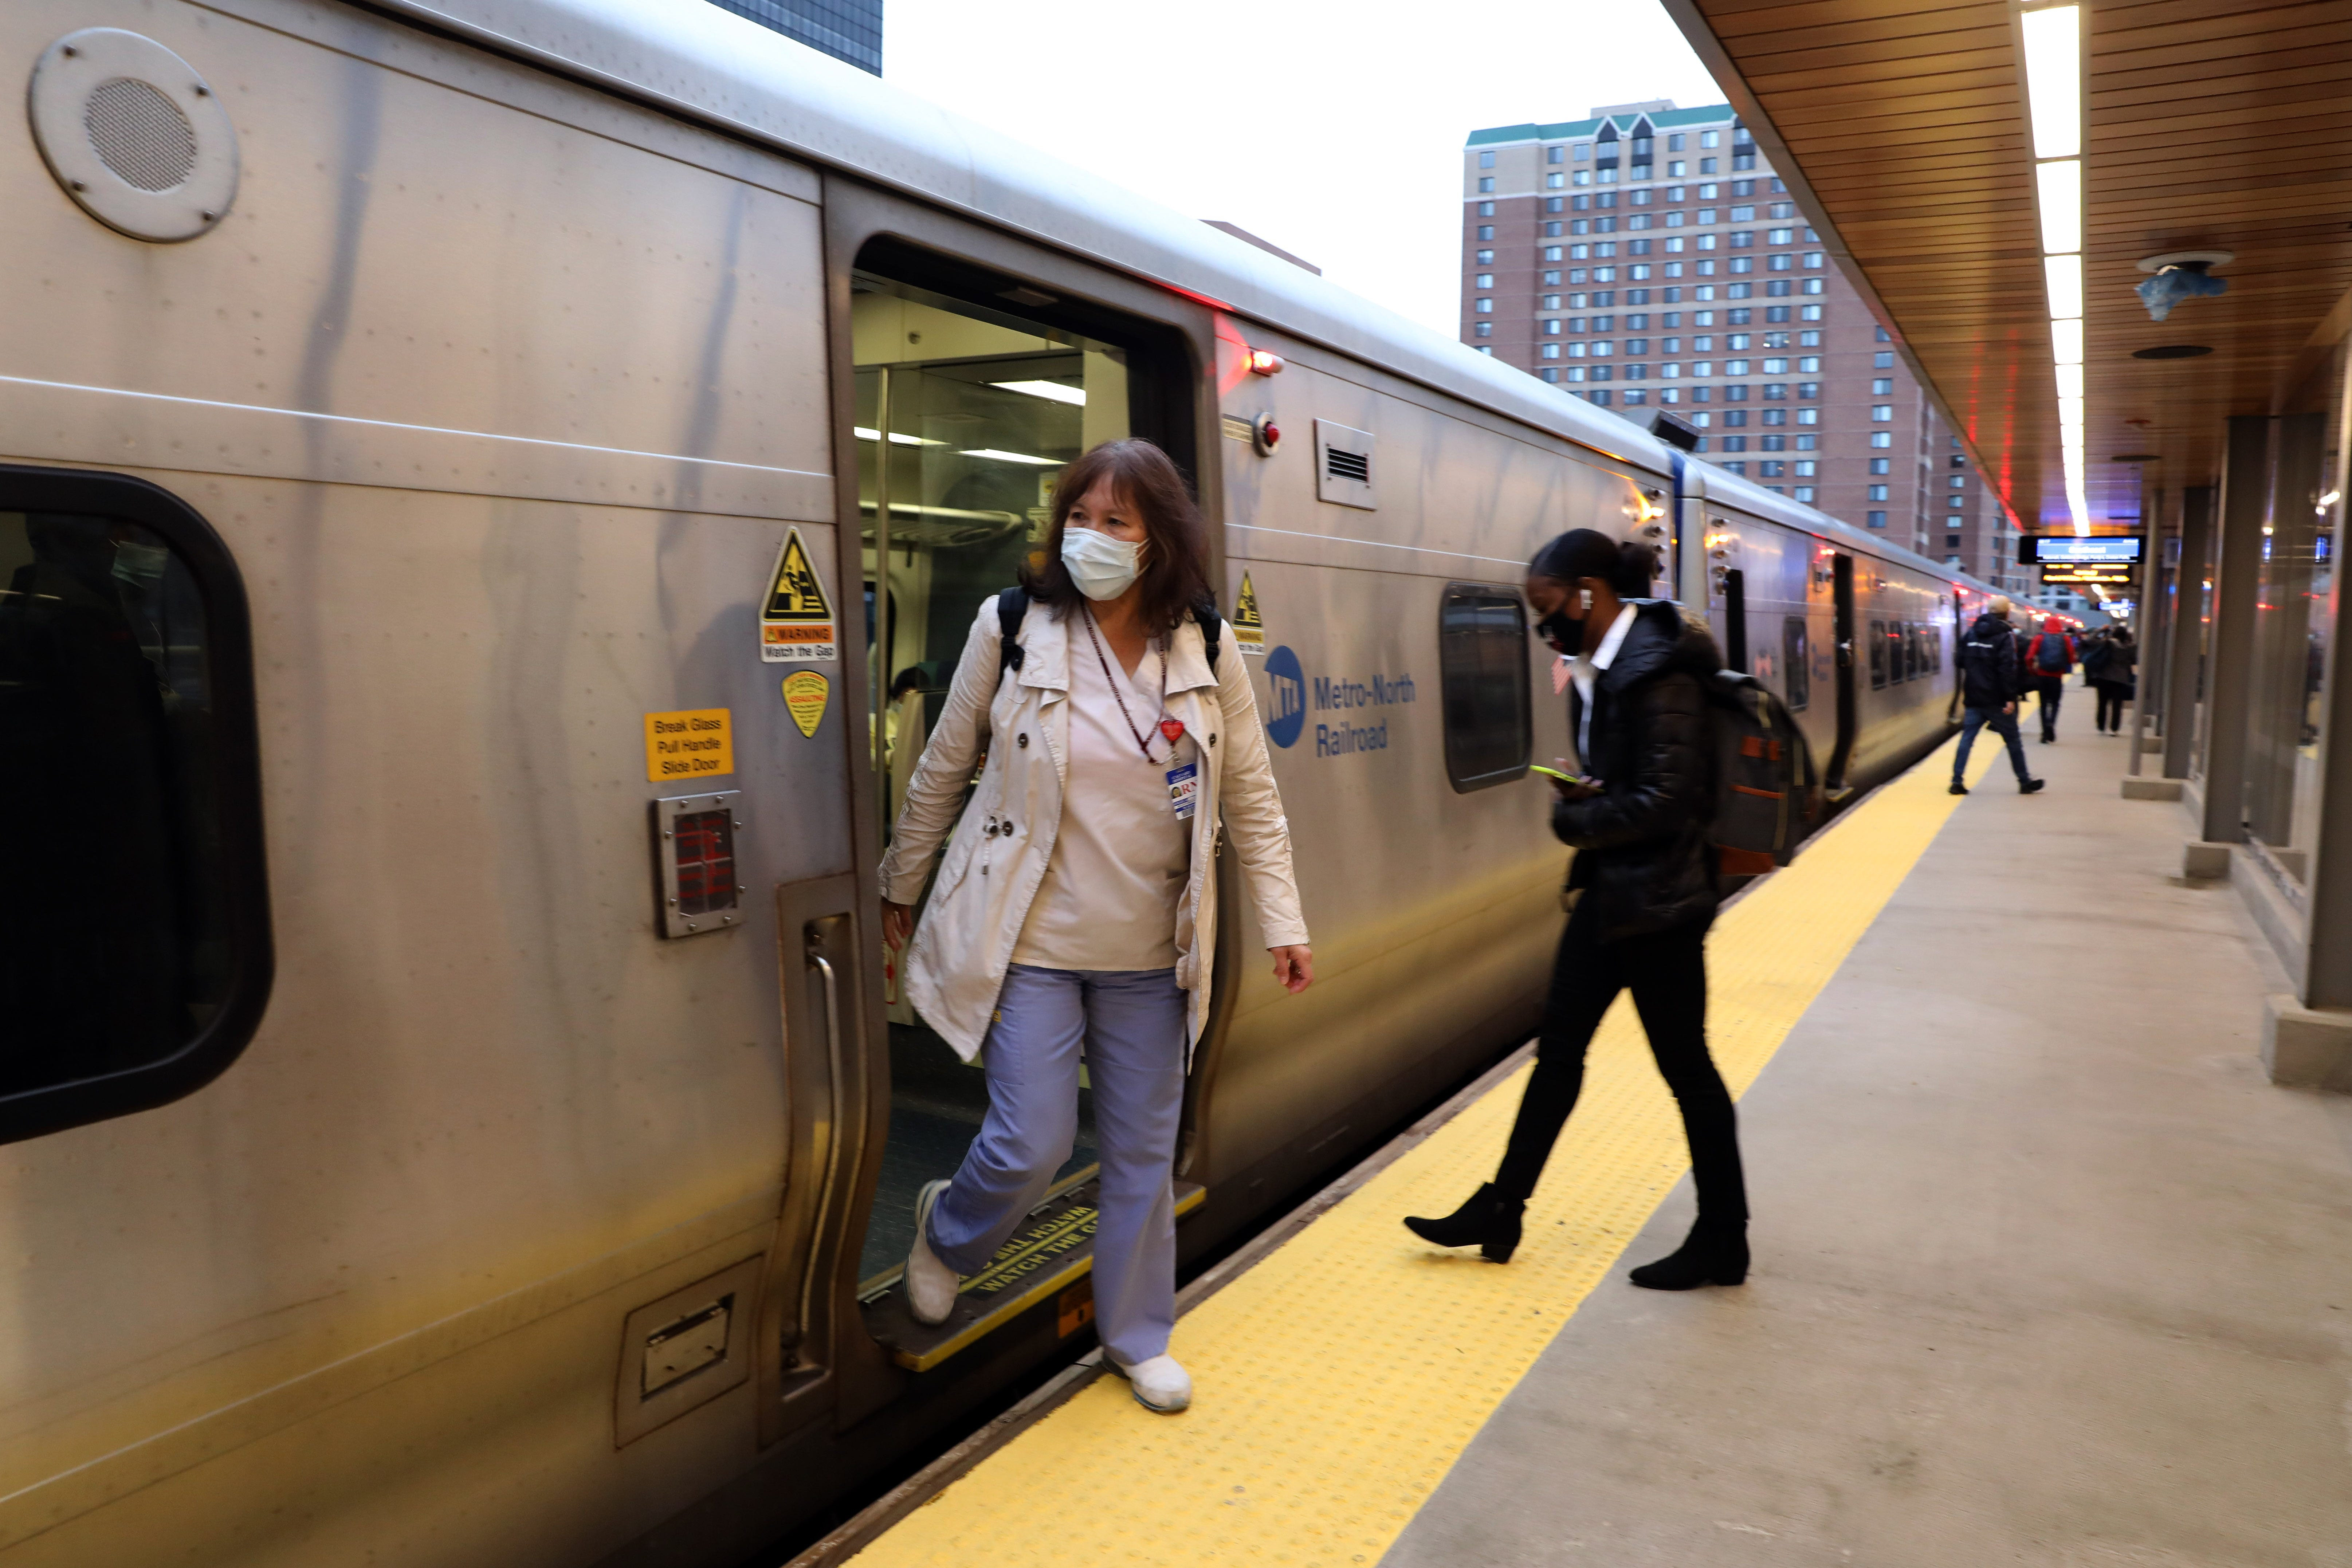 NYC subway system faces steep cuts; MTA chairman calls on 'Amtrak Joe' Biden to stave off 9,400 layoffs